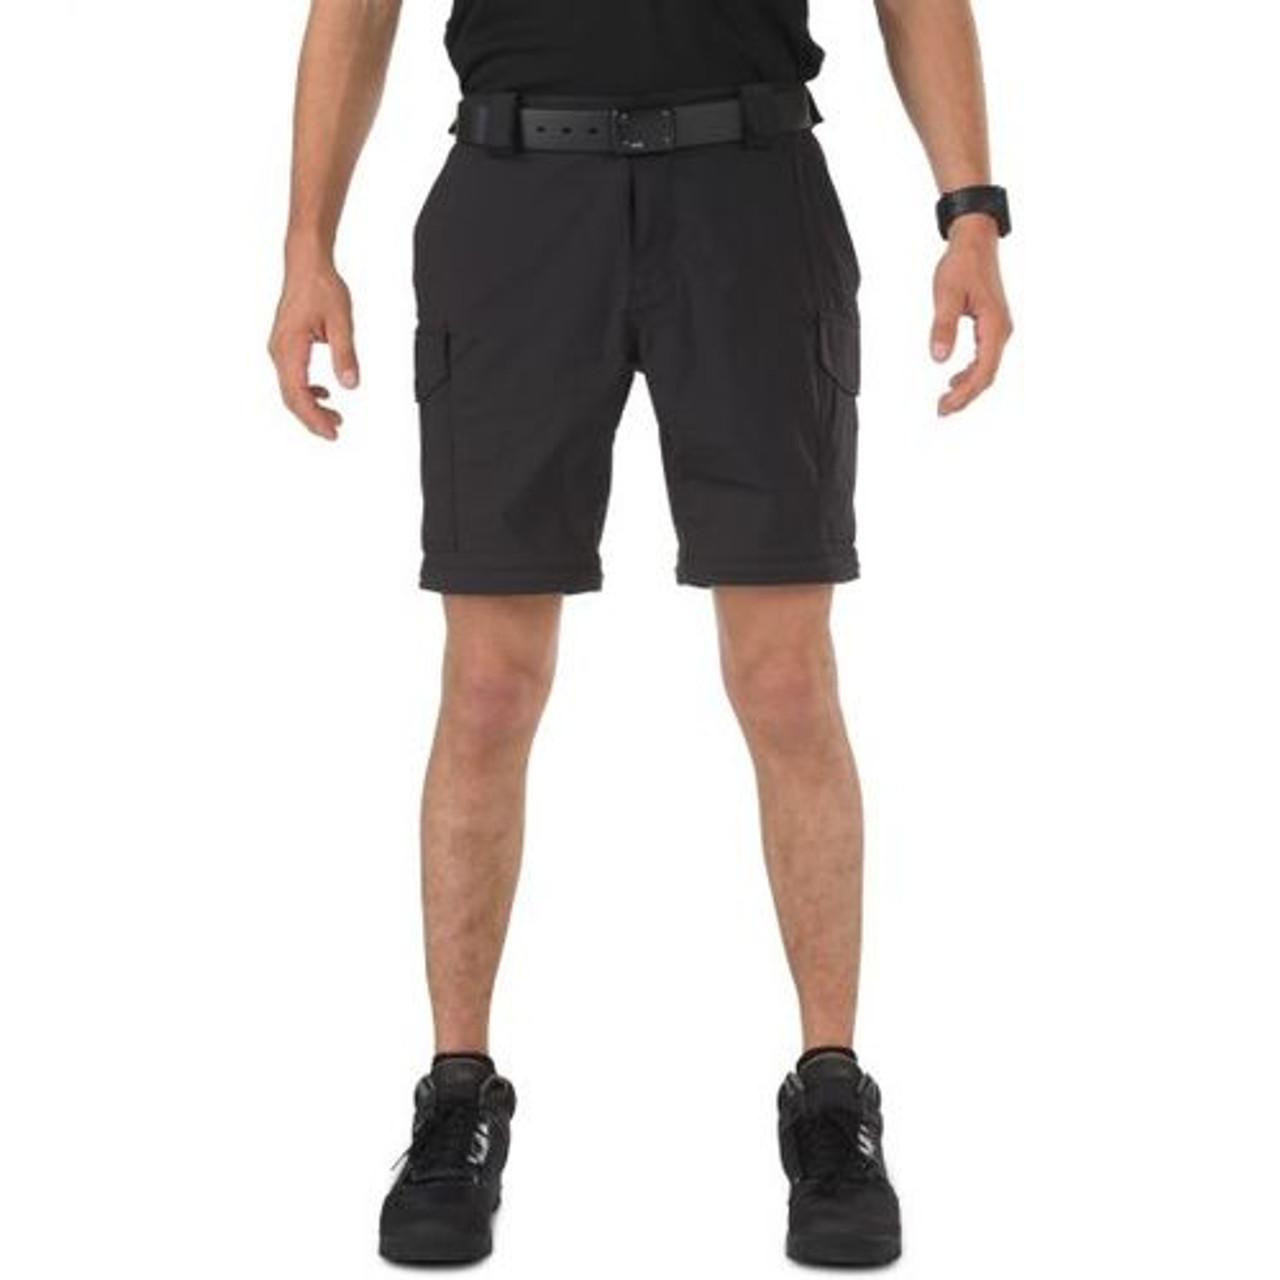 5.11 Tactical 45502 Bike Patrol Uniform/Cargo Pants, Zip-off capable, Nylon/Spandex, available in Black, or Dark Navy